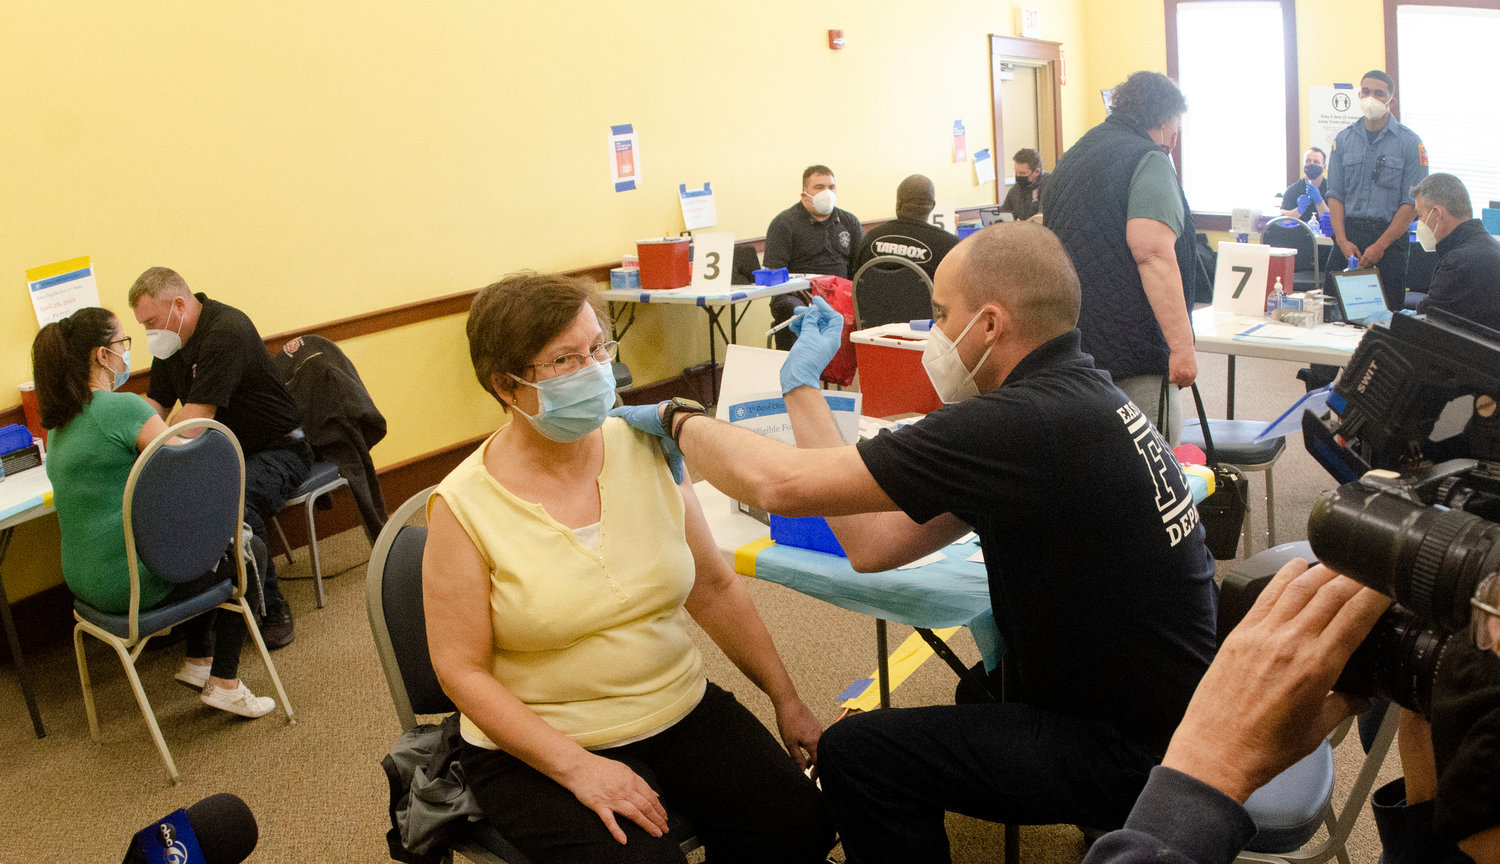 People received Covid-19 vaccinations at a regional vaccination site in East Providence.